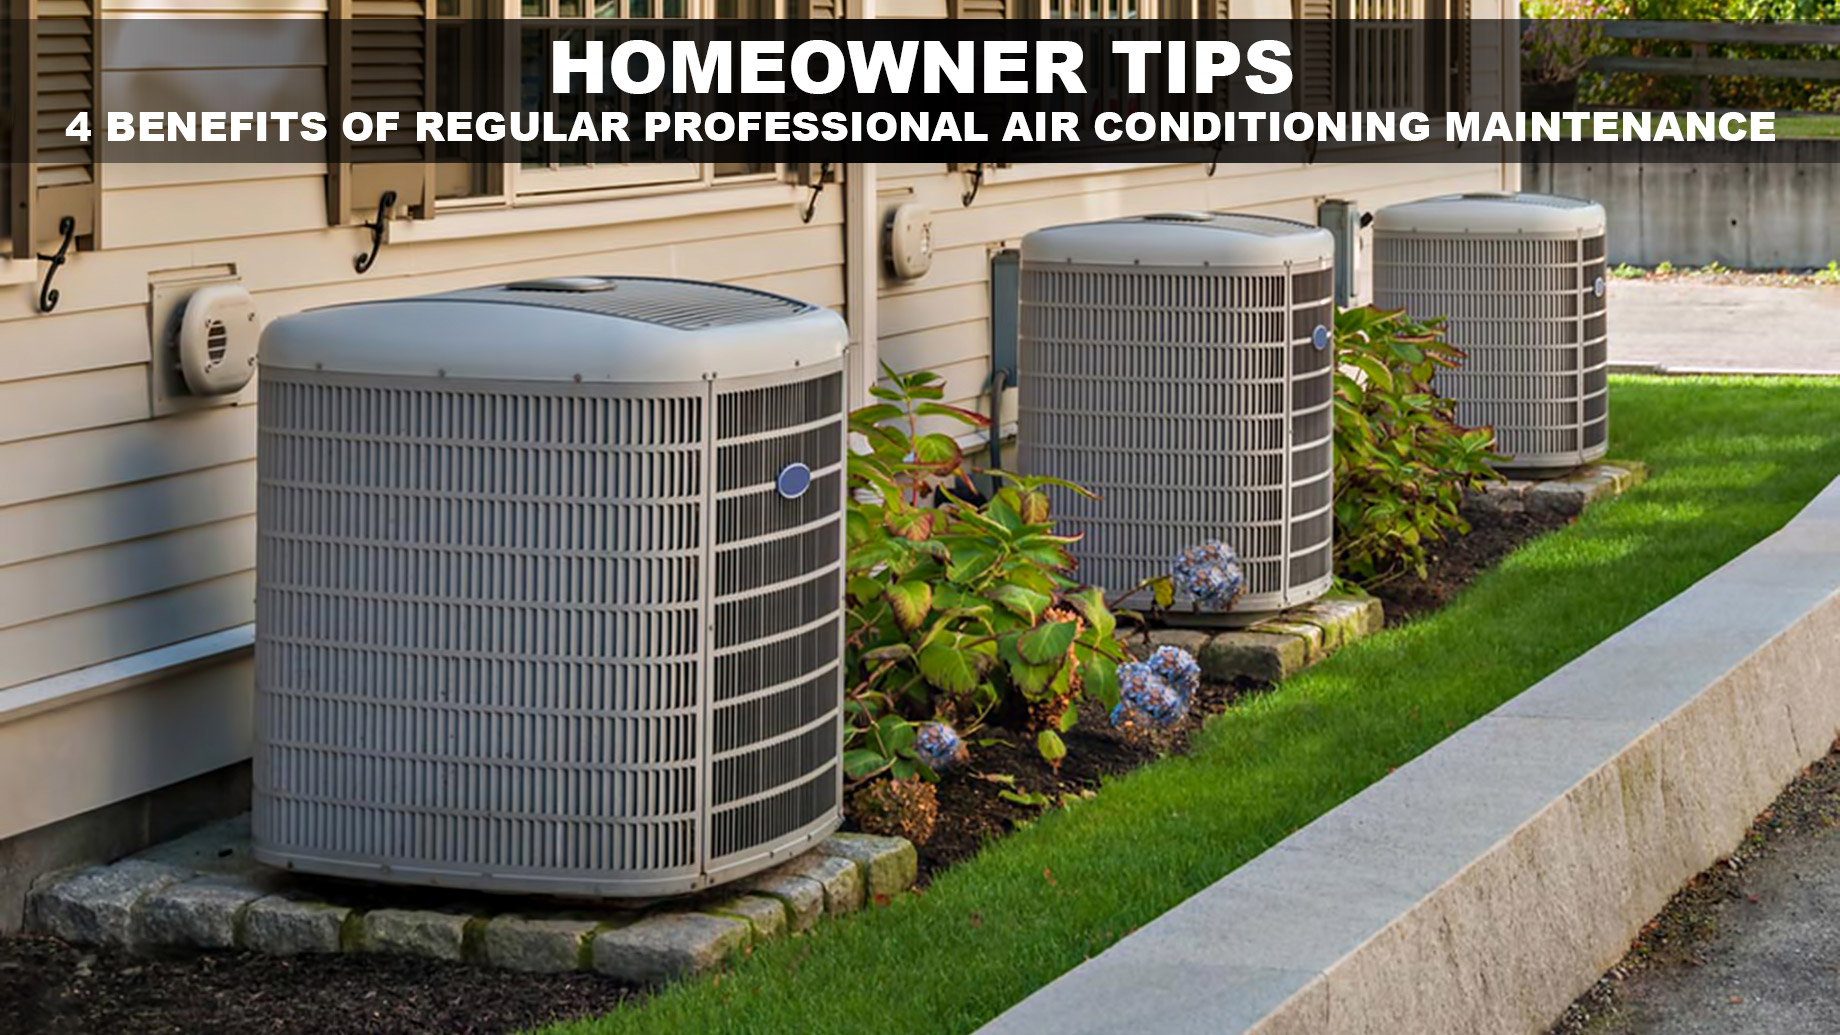 Homeowner Tips - 4 Benefits of Regular Professional Air Conditioning Maintenance